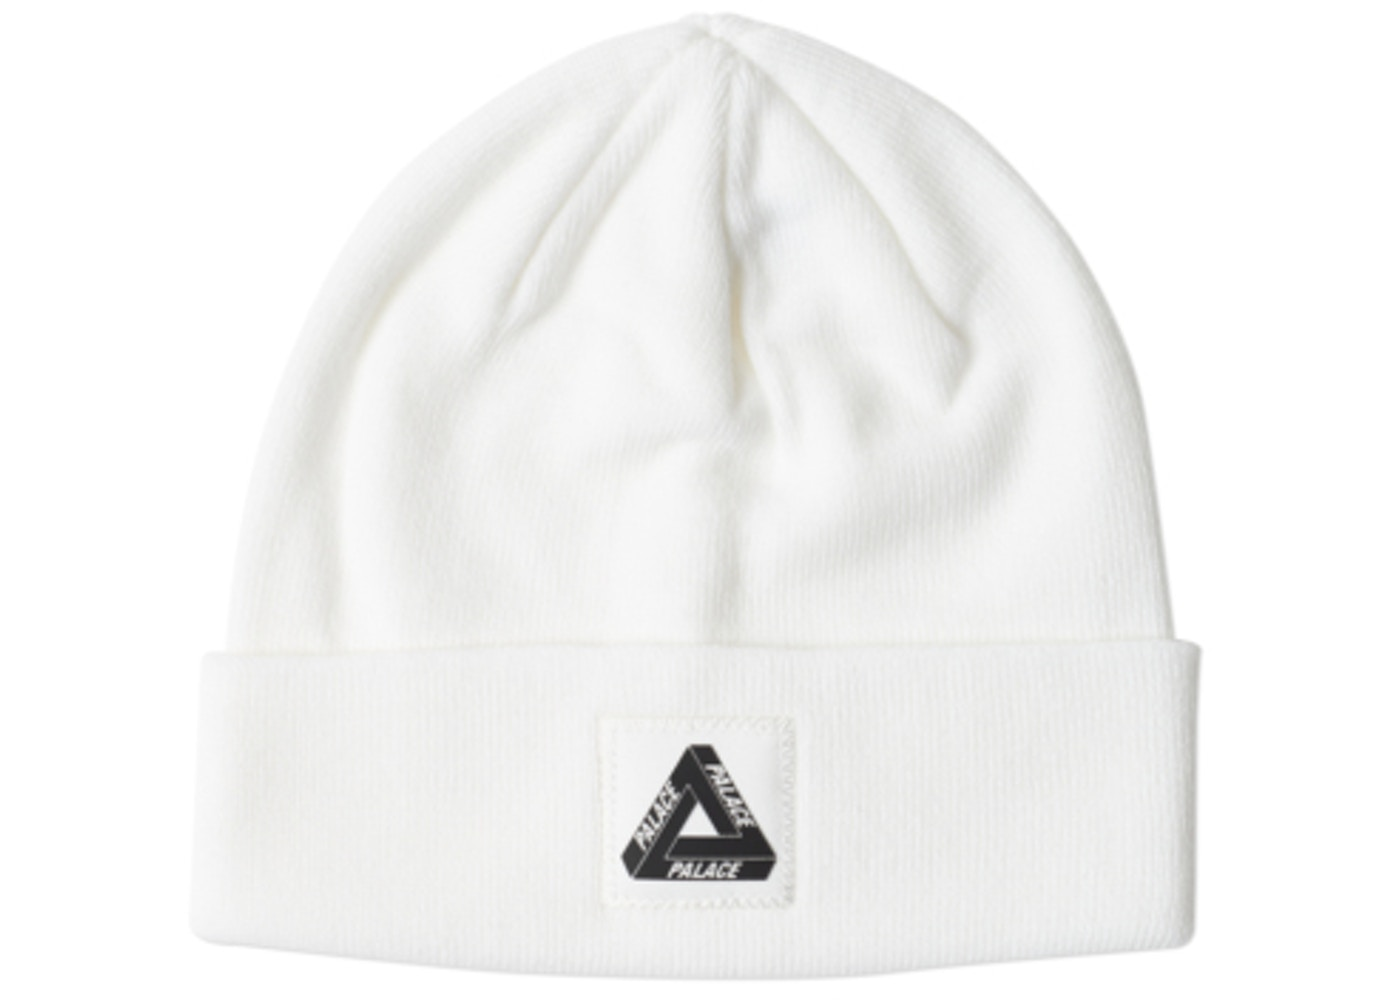 8f15c033446 Palace Triferg Patch Beanie White • Buy or Sell on StockX